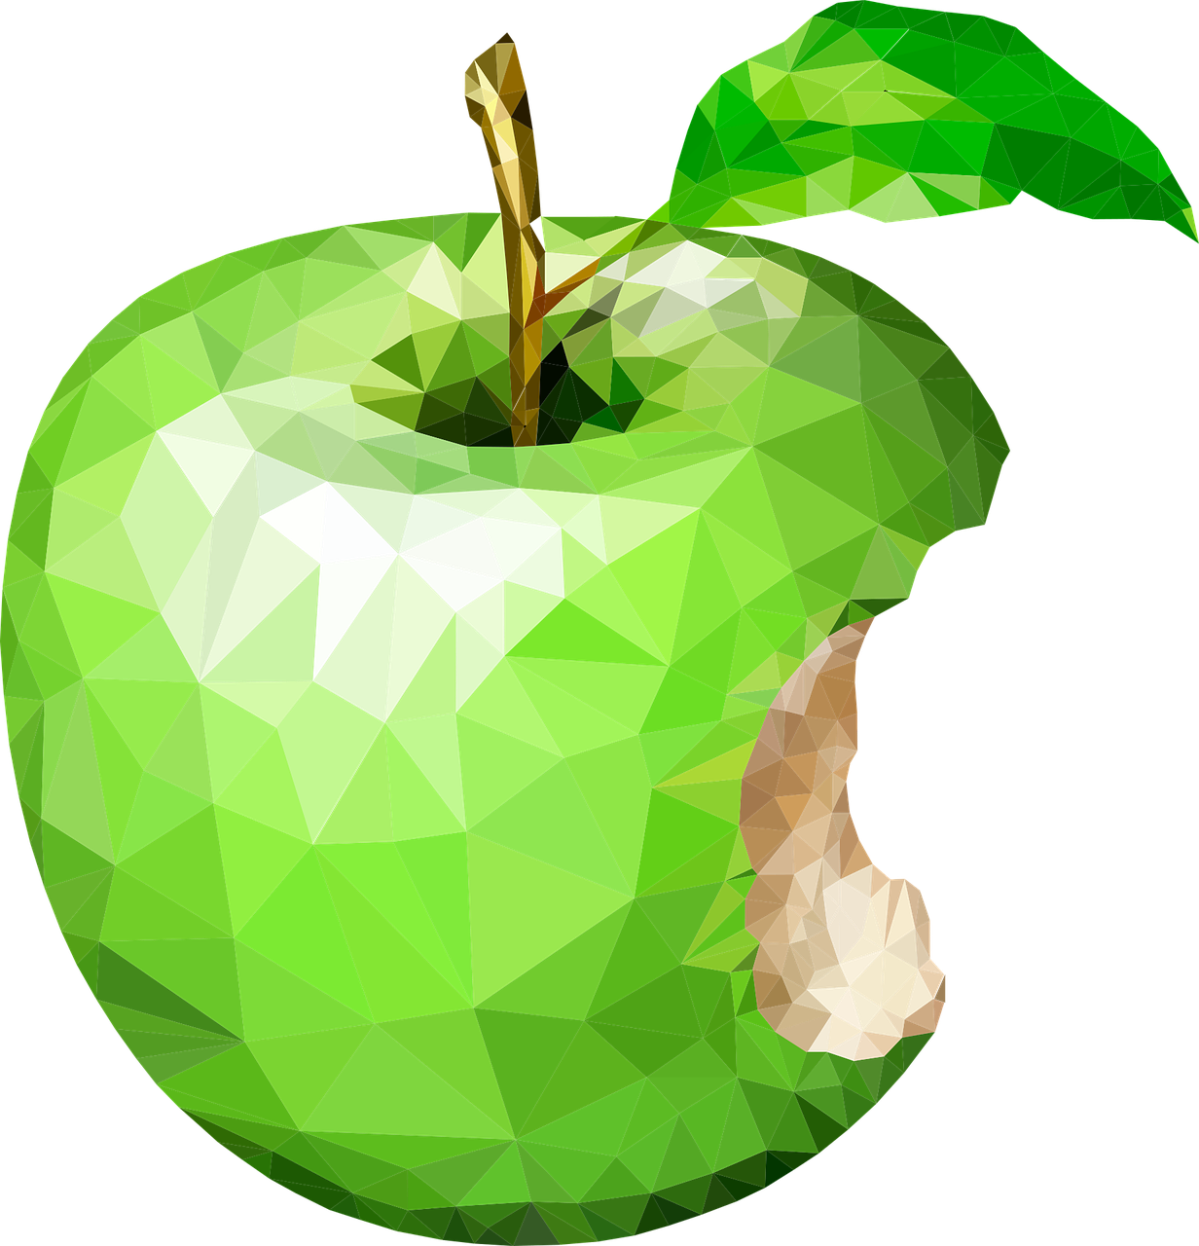 Clipart image of a juicy, green apple